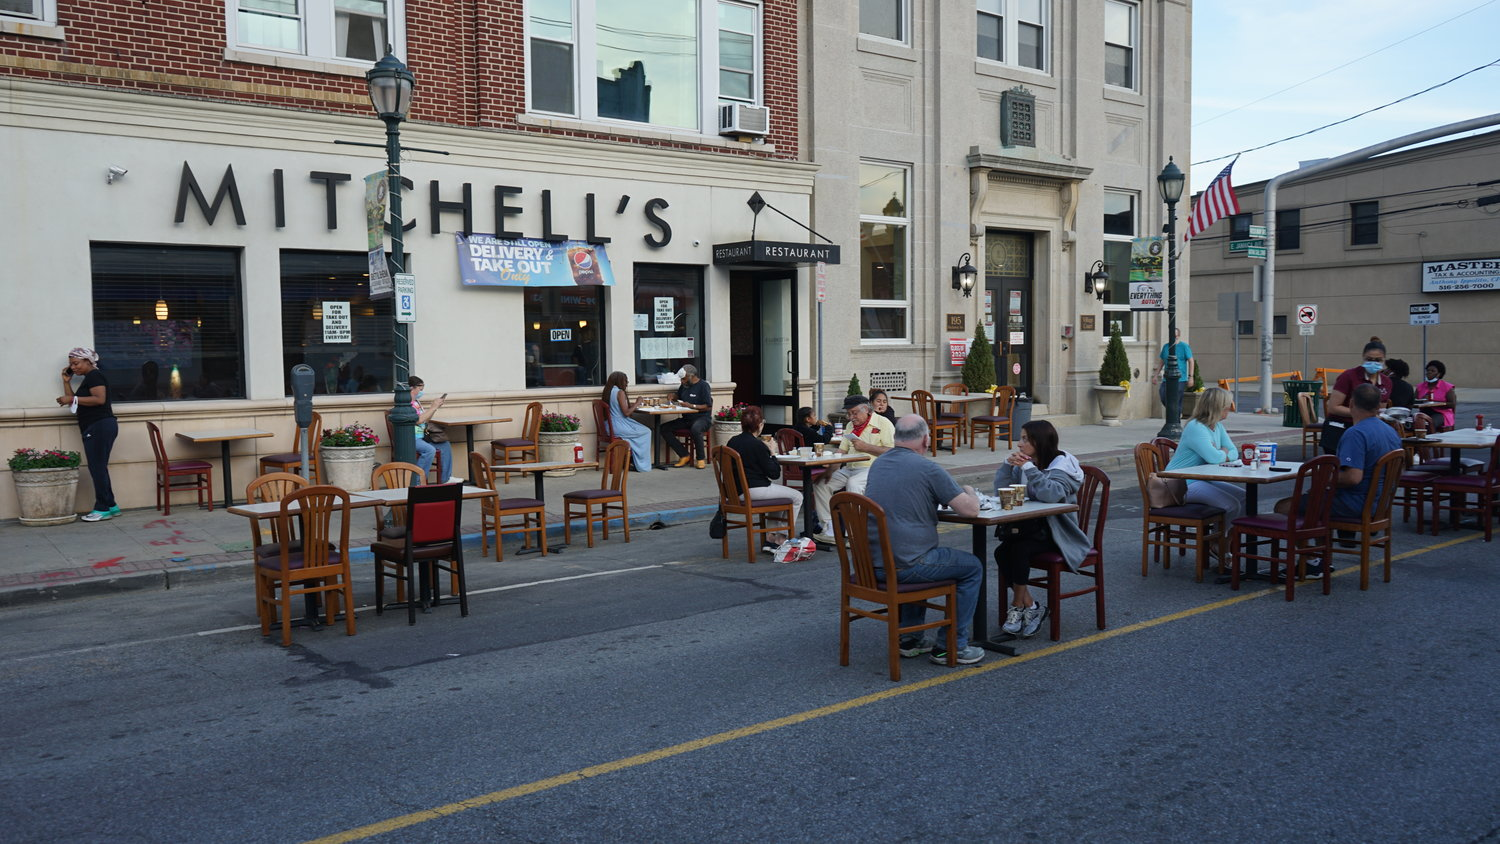 Mitchell's Restaurant, on Rockaway Avenue, took advantage of on-street dining during the summer, but with the winter months approaching, its customers have been driven indoors, where capacity is limited to 50 percent.